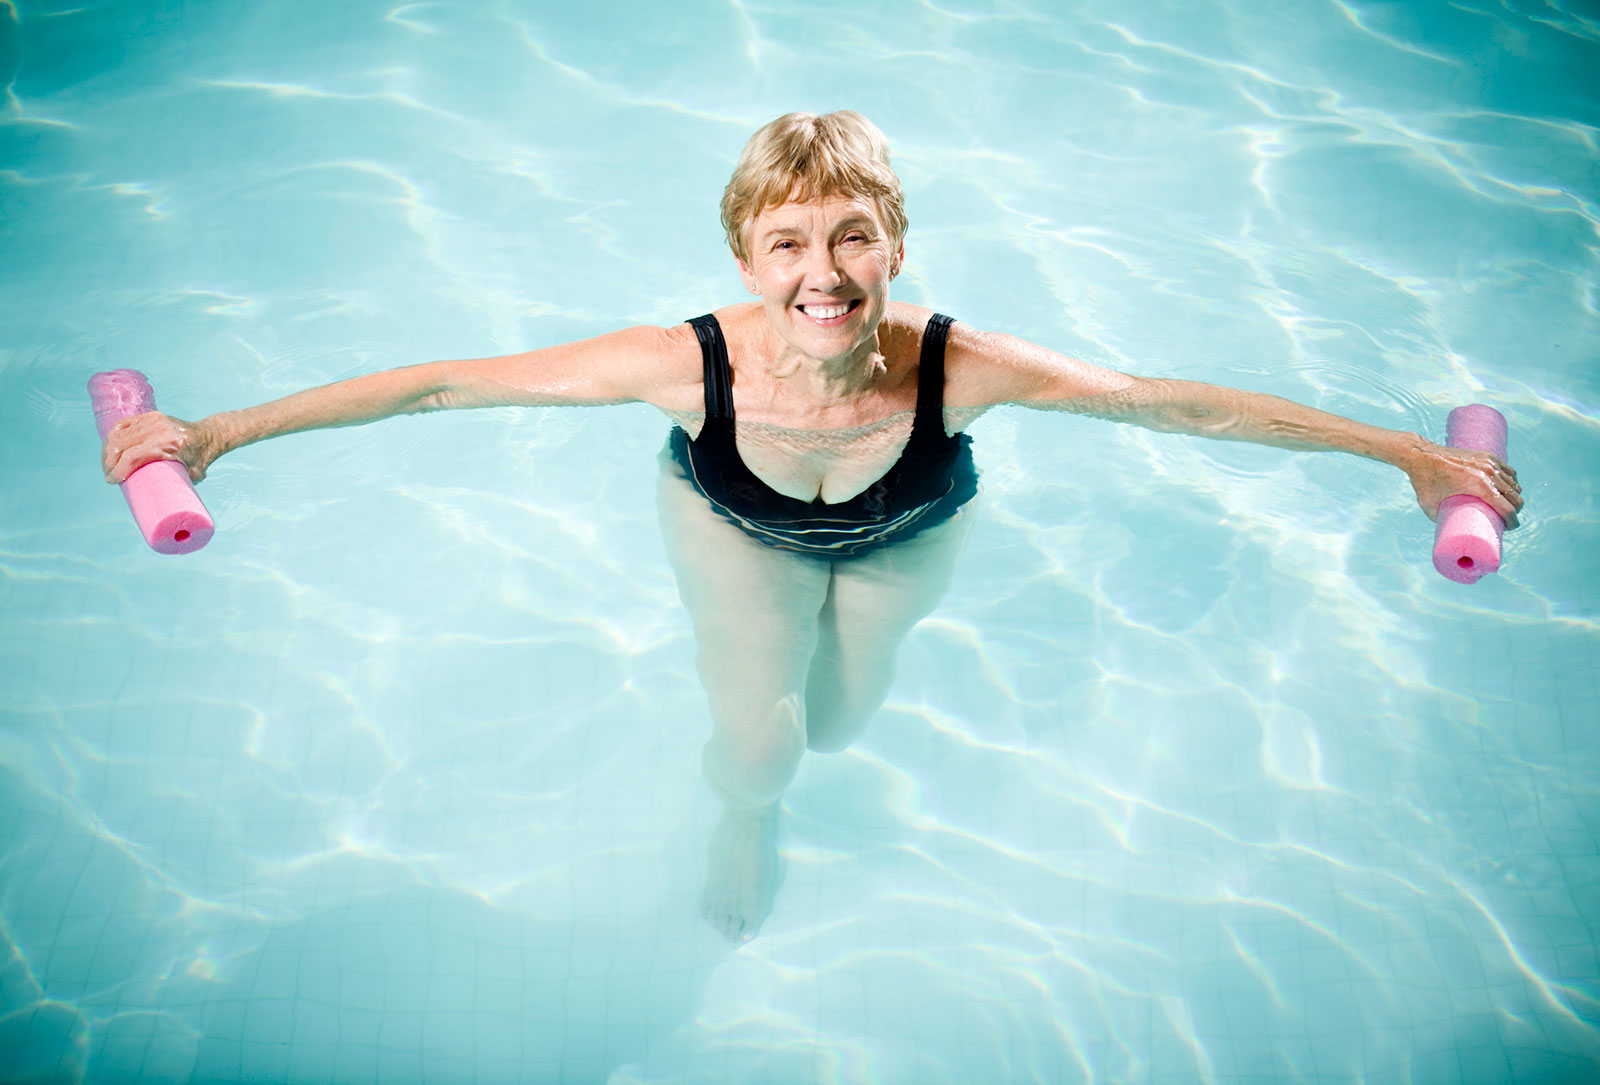 senior-woman-water-exercise.jpg